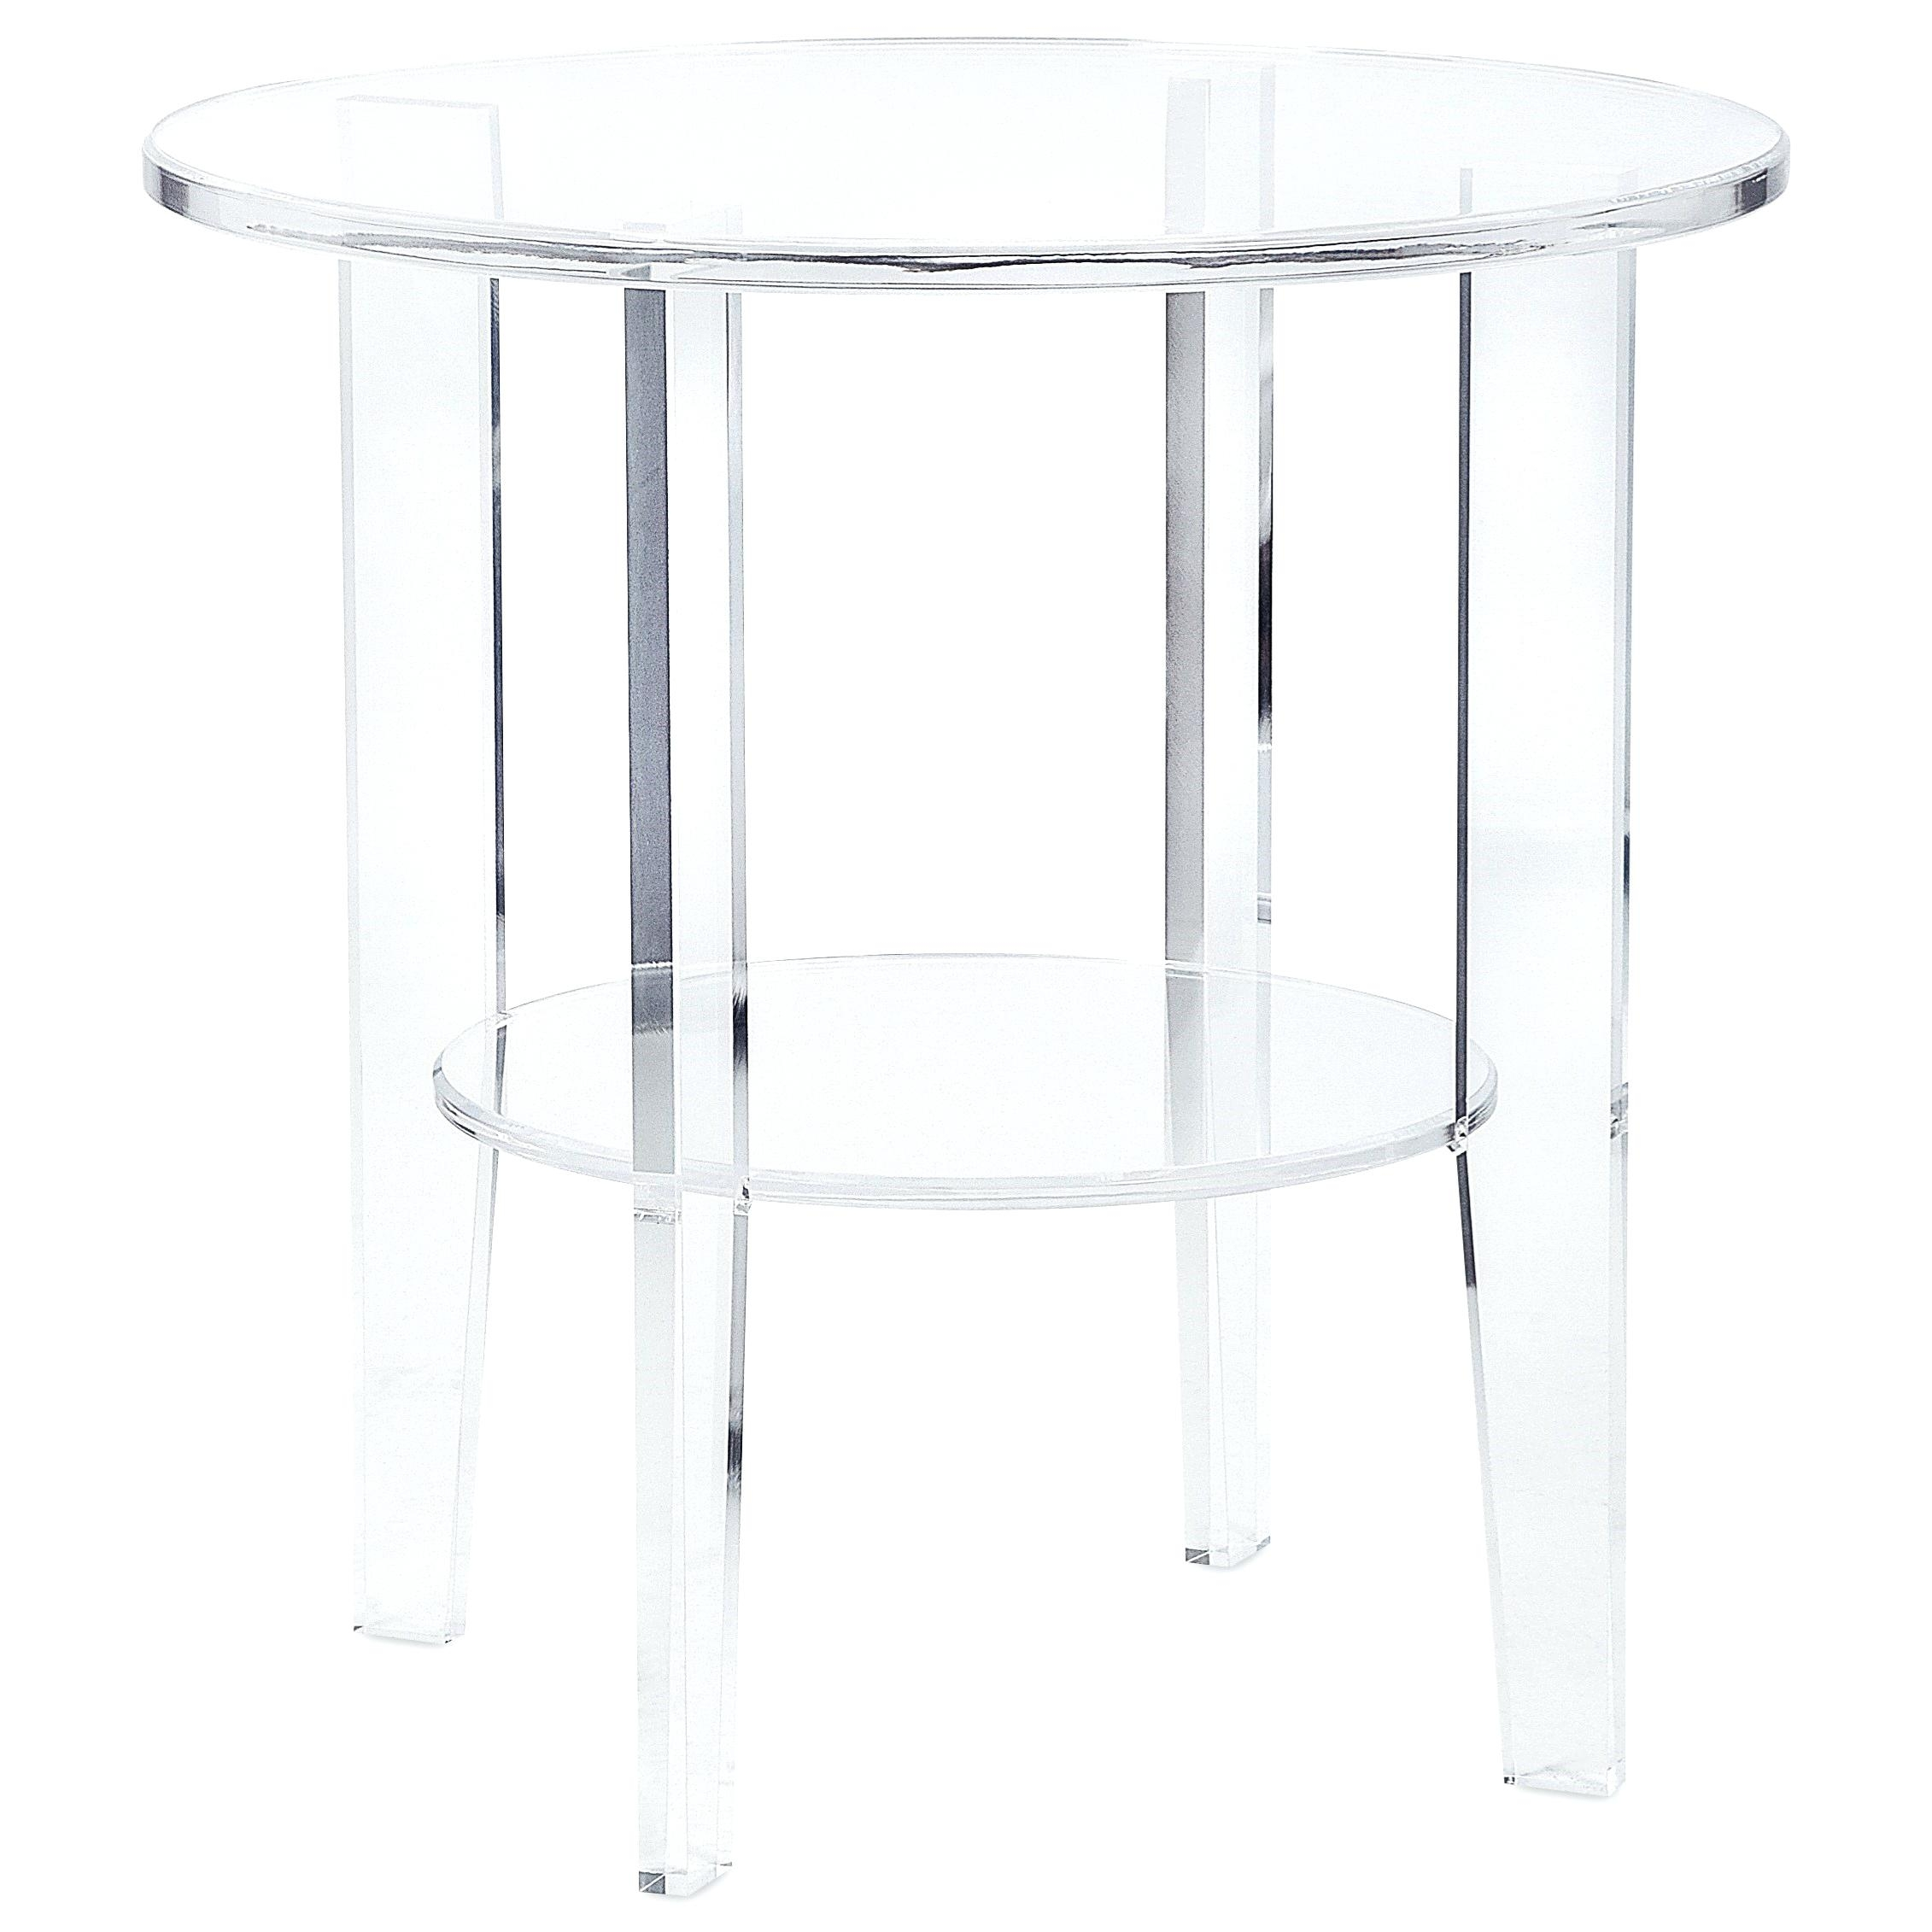 Acrylic Accent Tables Awesome Acrylic End Tables Acrylic Fabrication Throughout Peekaboo Acrylic Tall Coffee Tables (View 21 of 30)